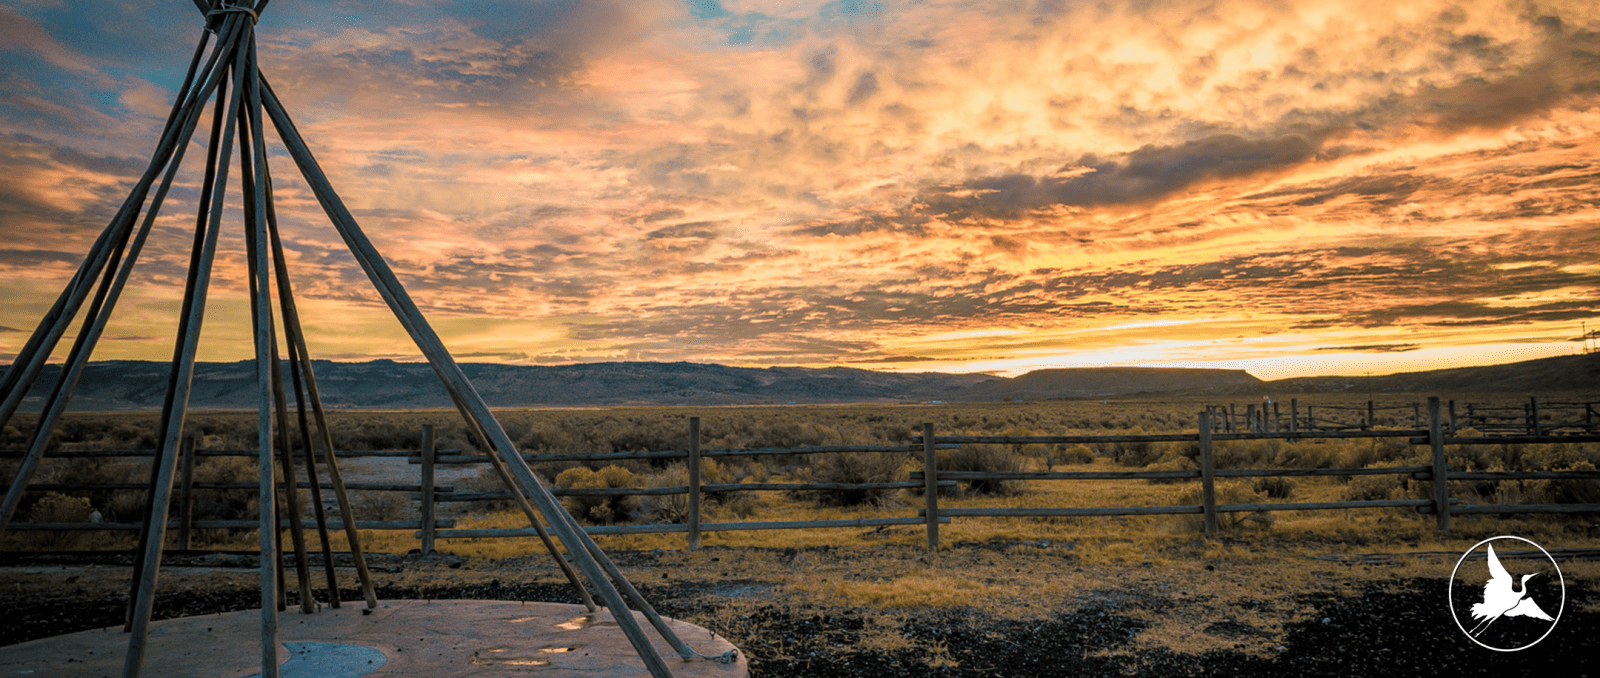 Scenic View and Wooden Tipi at Crystal Crane Hot Springs